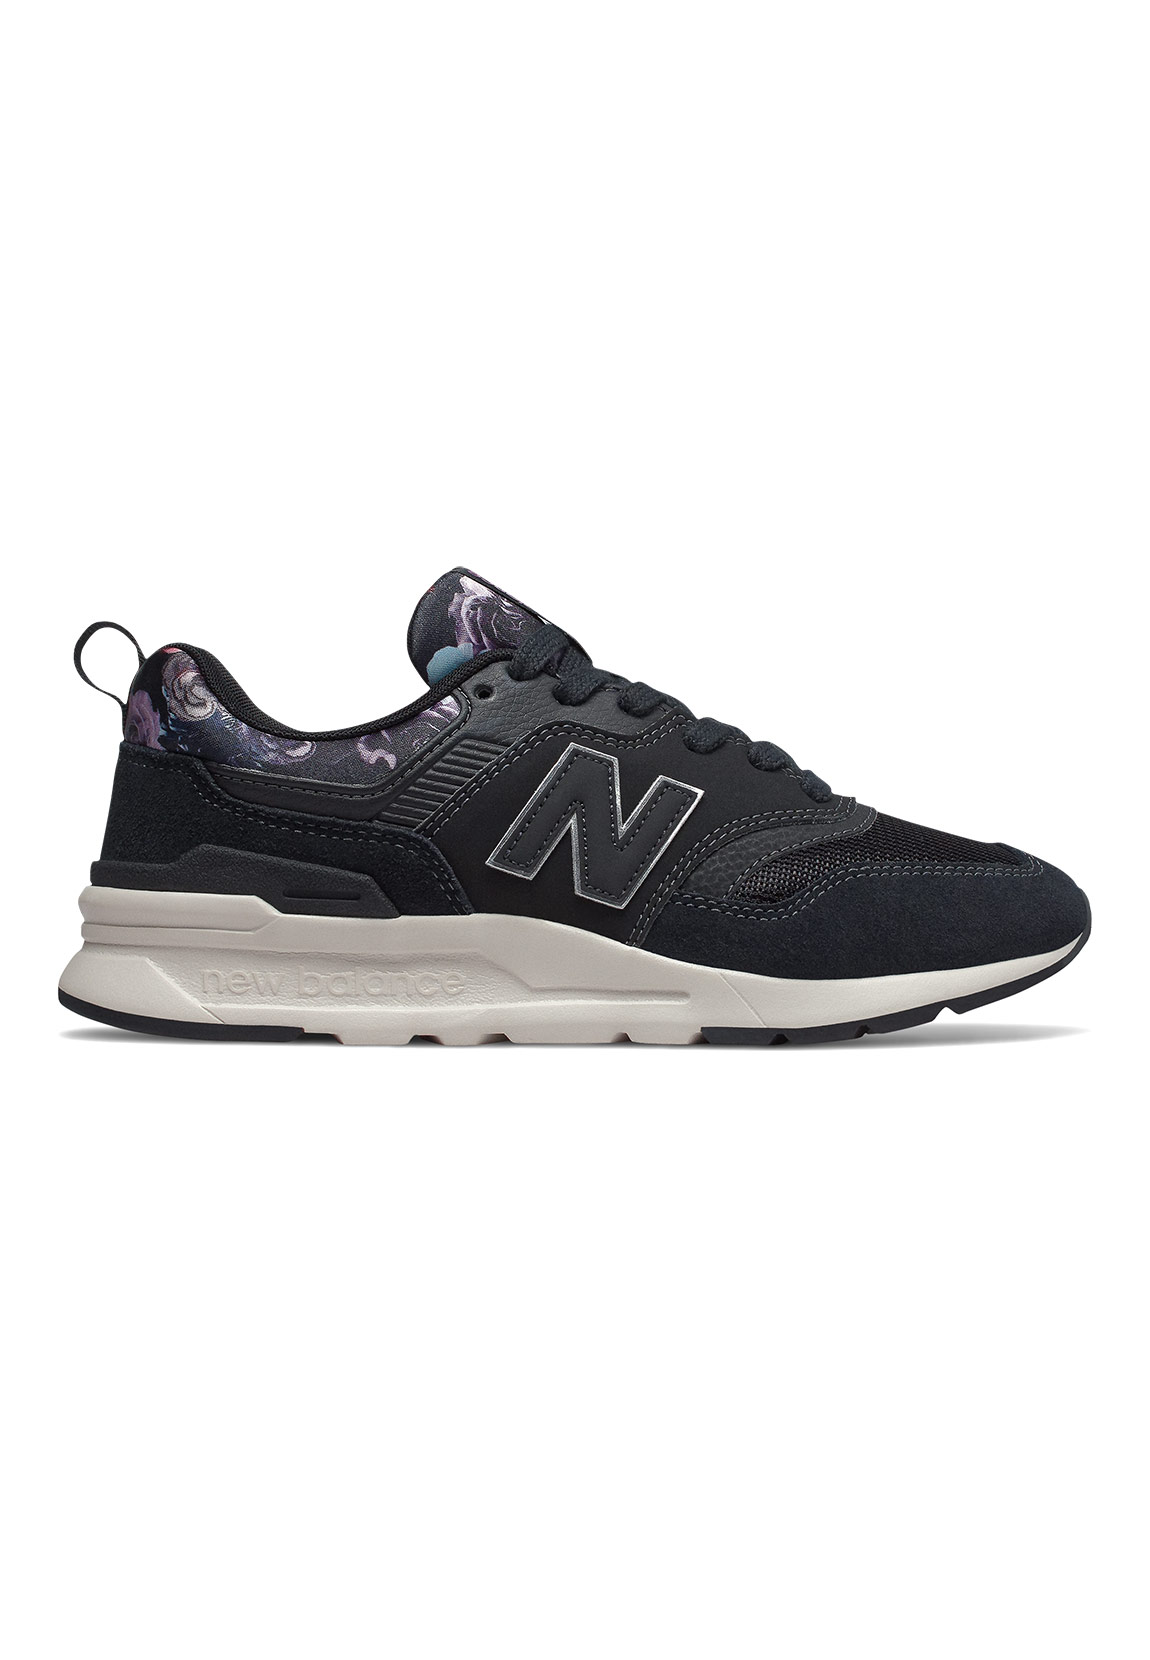 New Balance Sneaker Damen CW997HXG Schwarz Black Purple